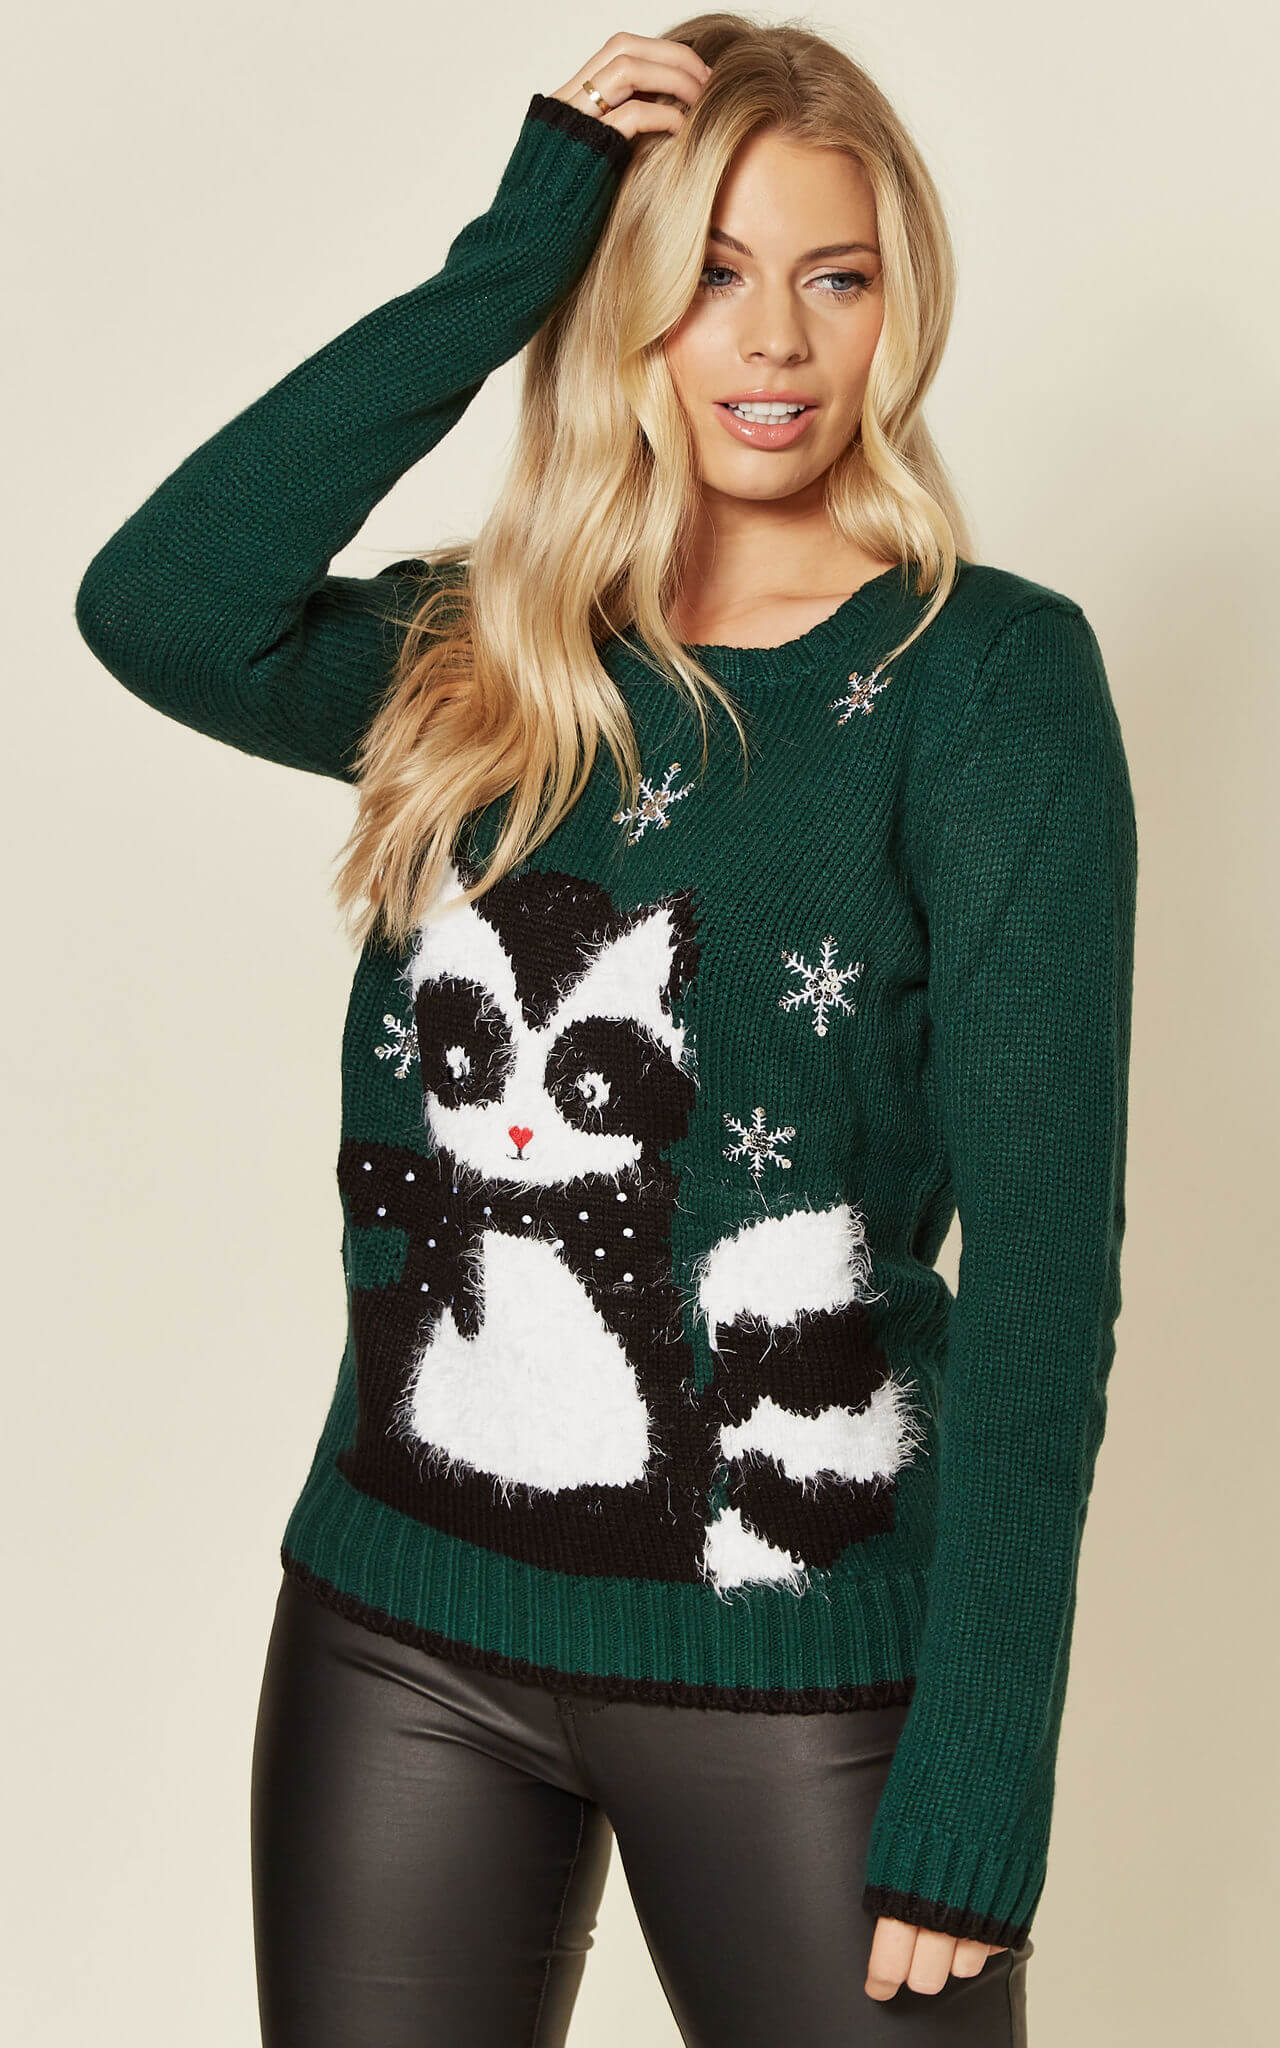 Model wears a green jumper with racoon and snowflake embroidery.